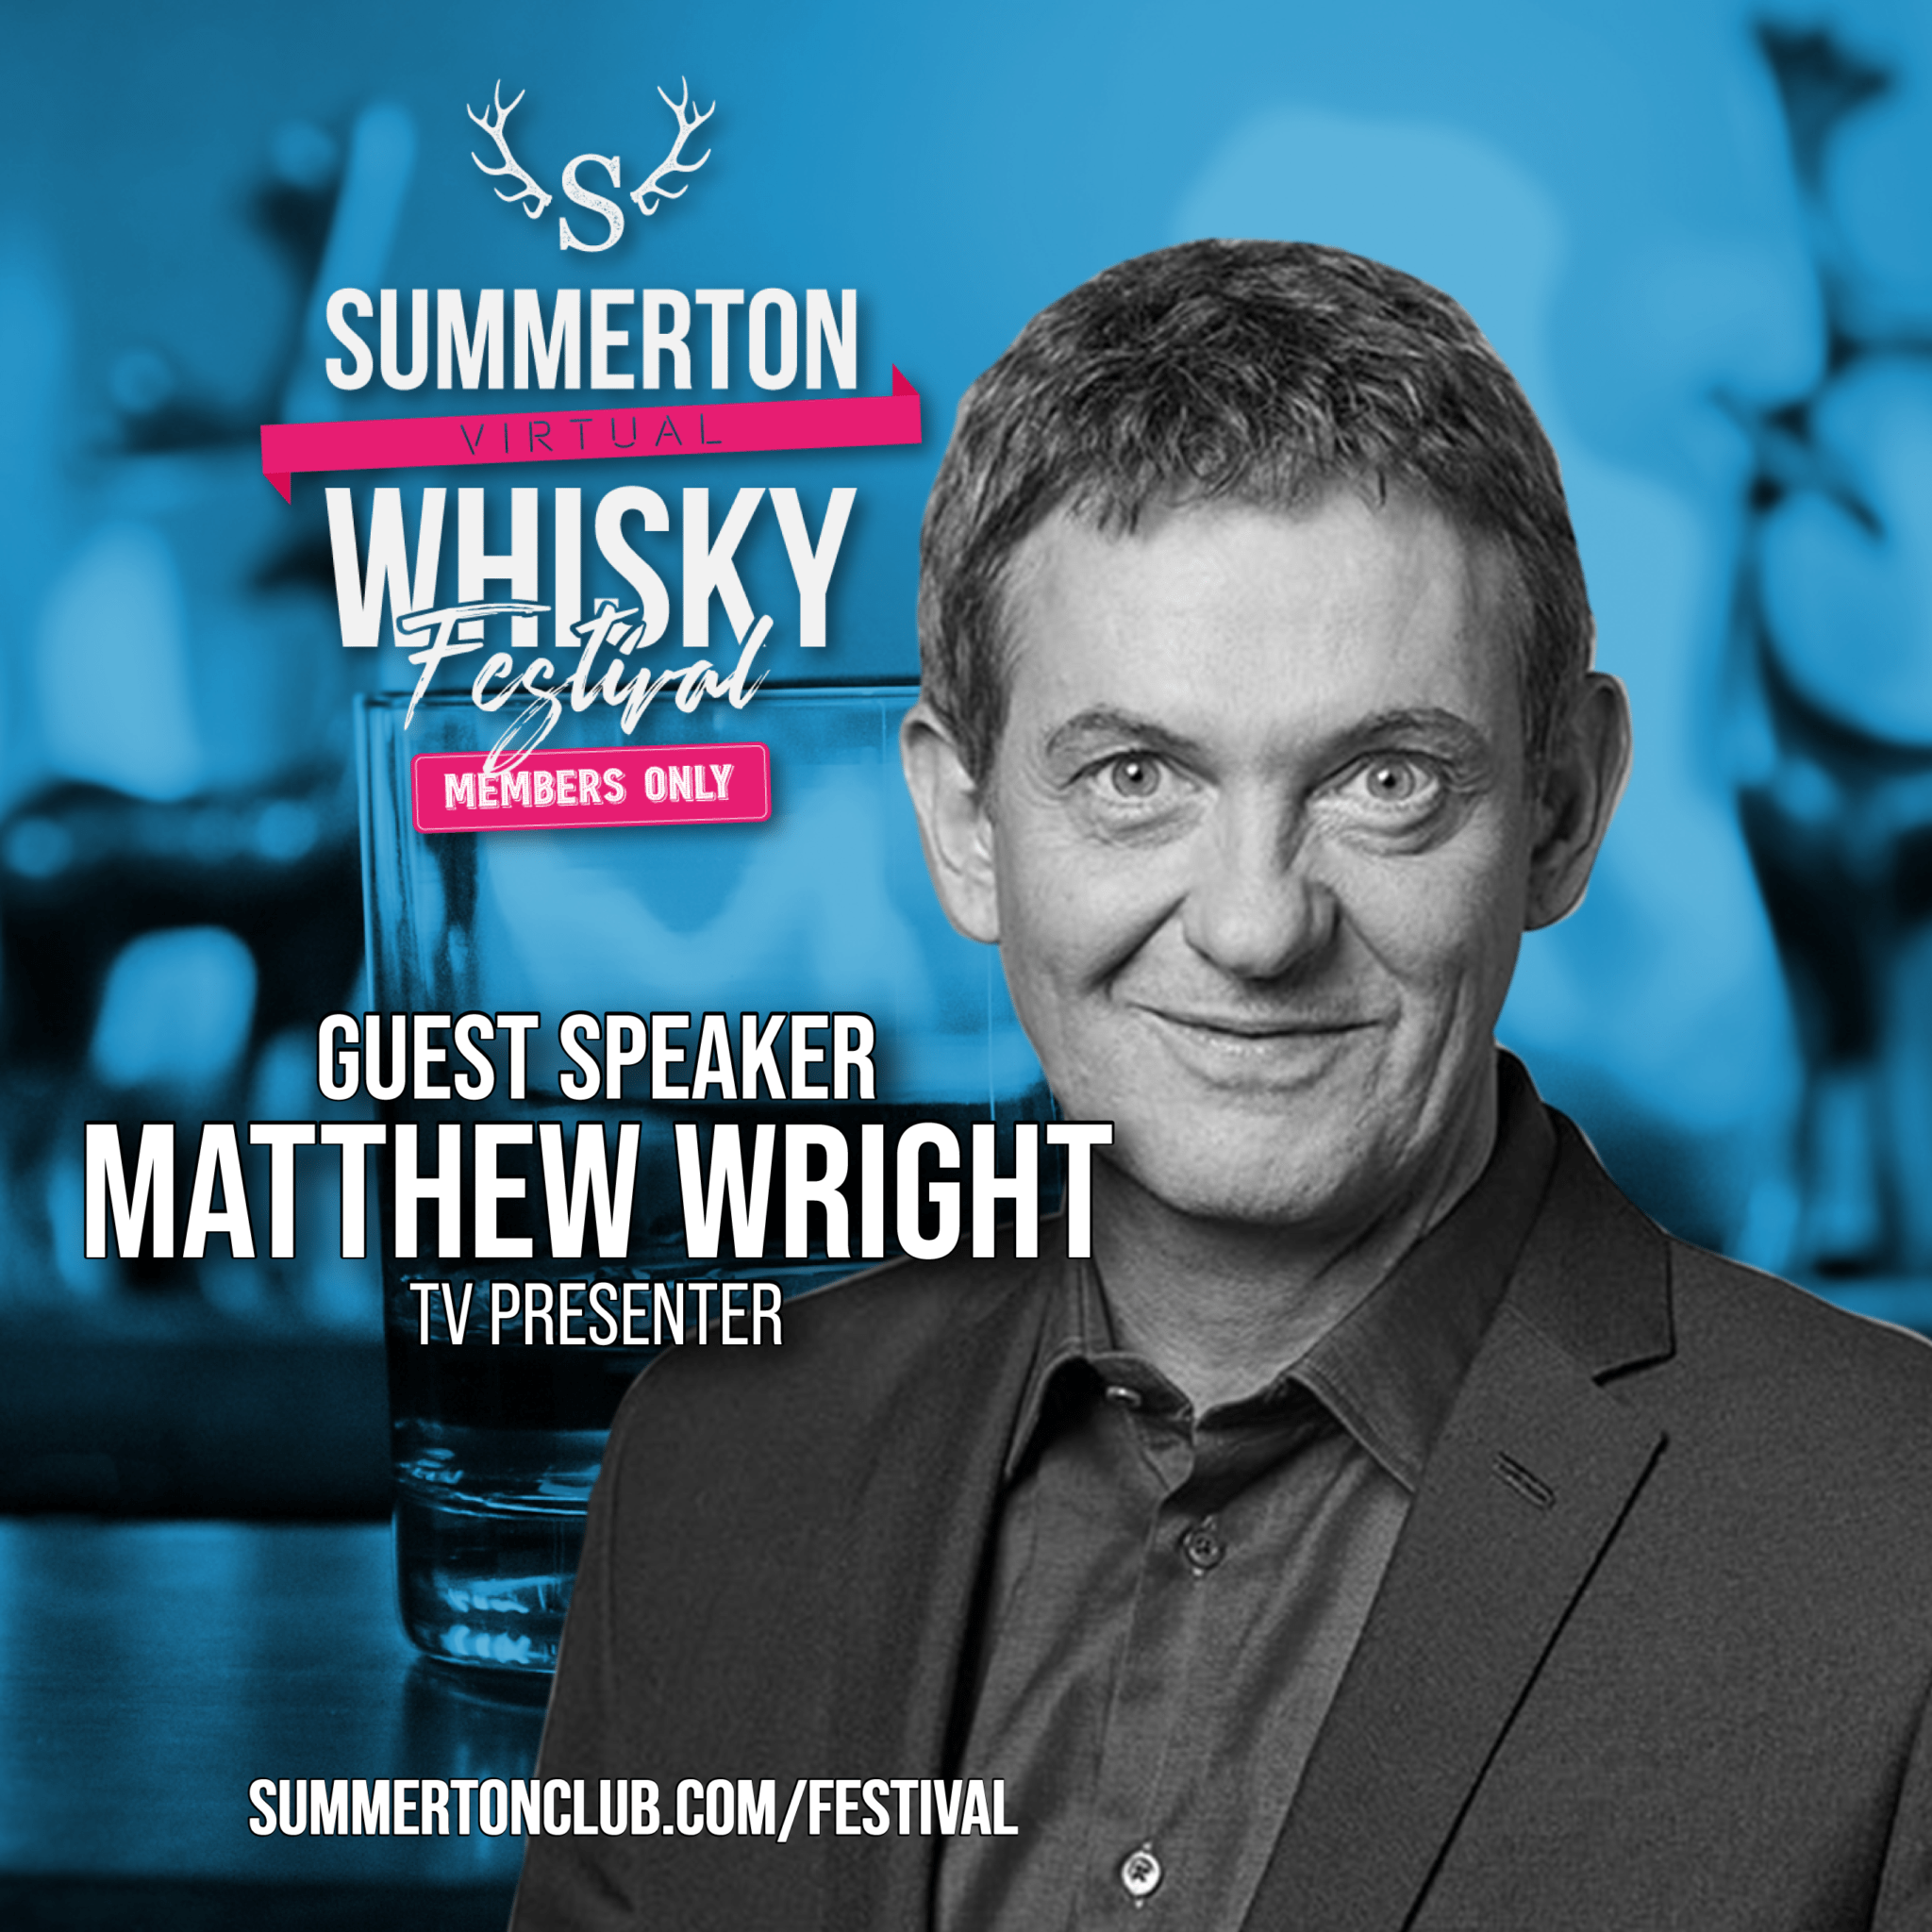 Summerton Virtual Whisky Festival – Members Only – 2021, Summerton Whisky Club